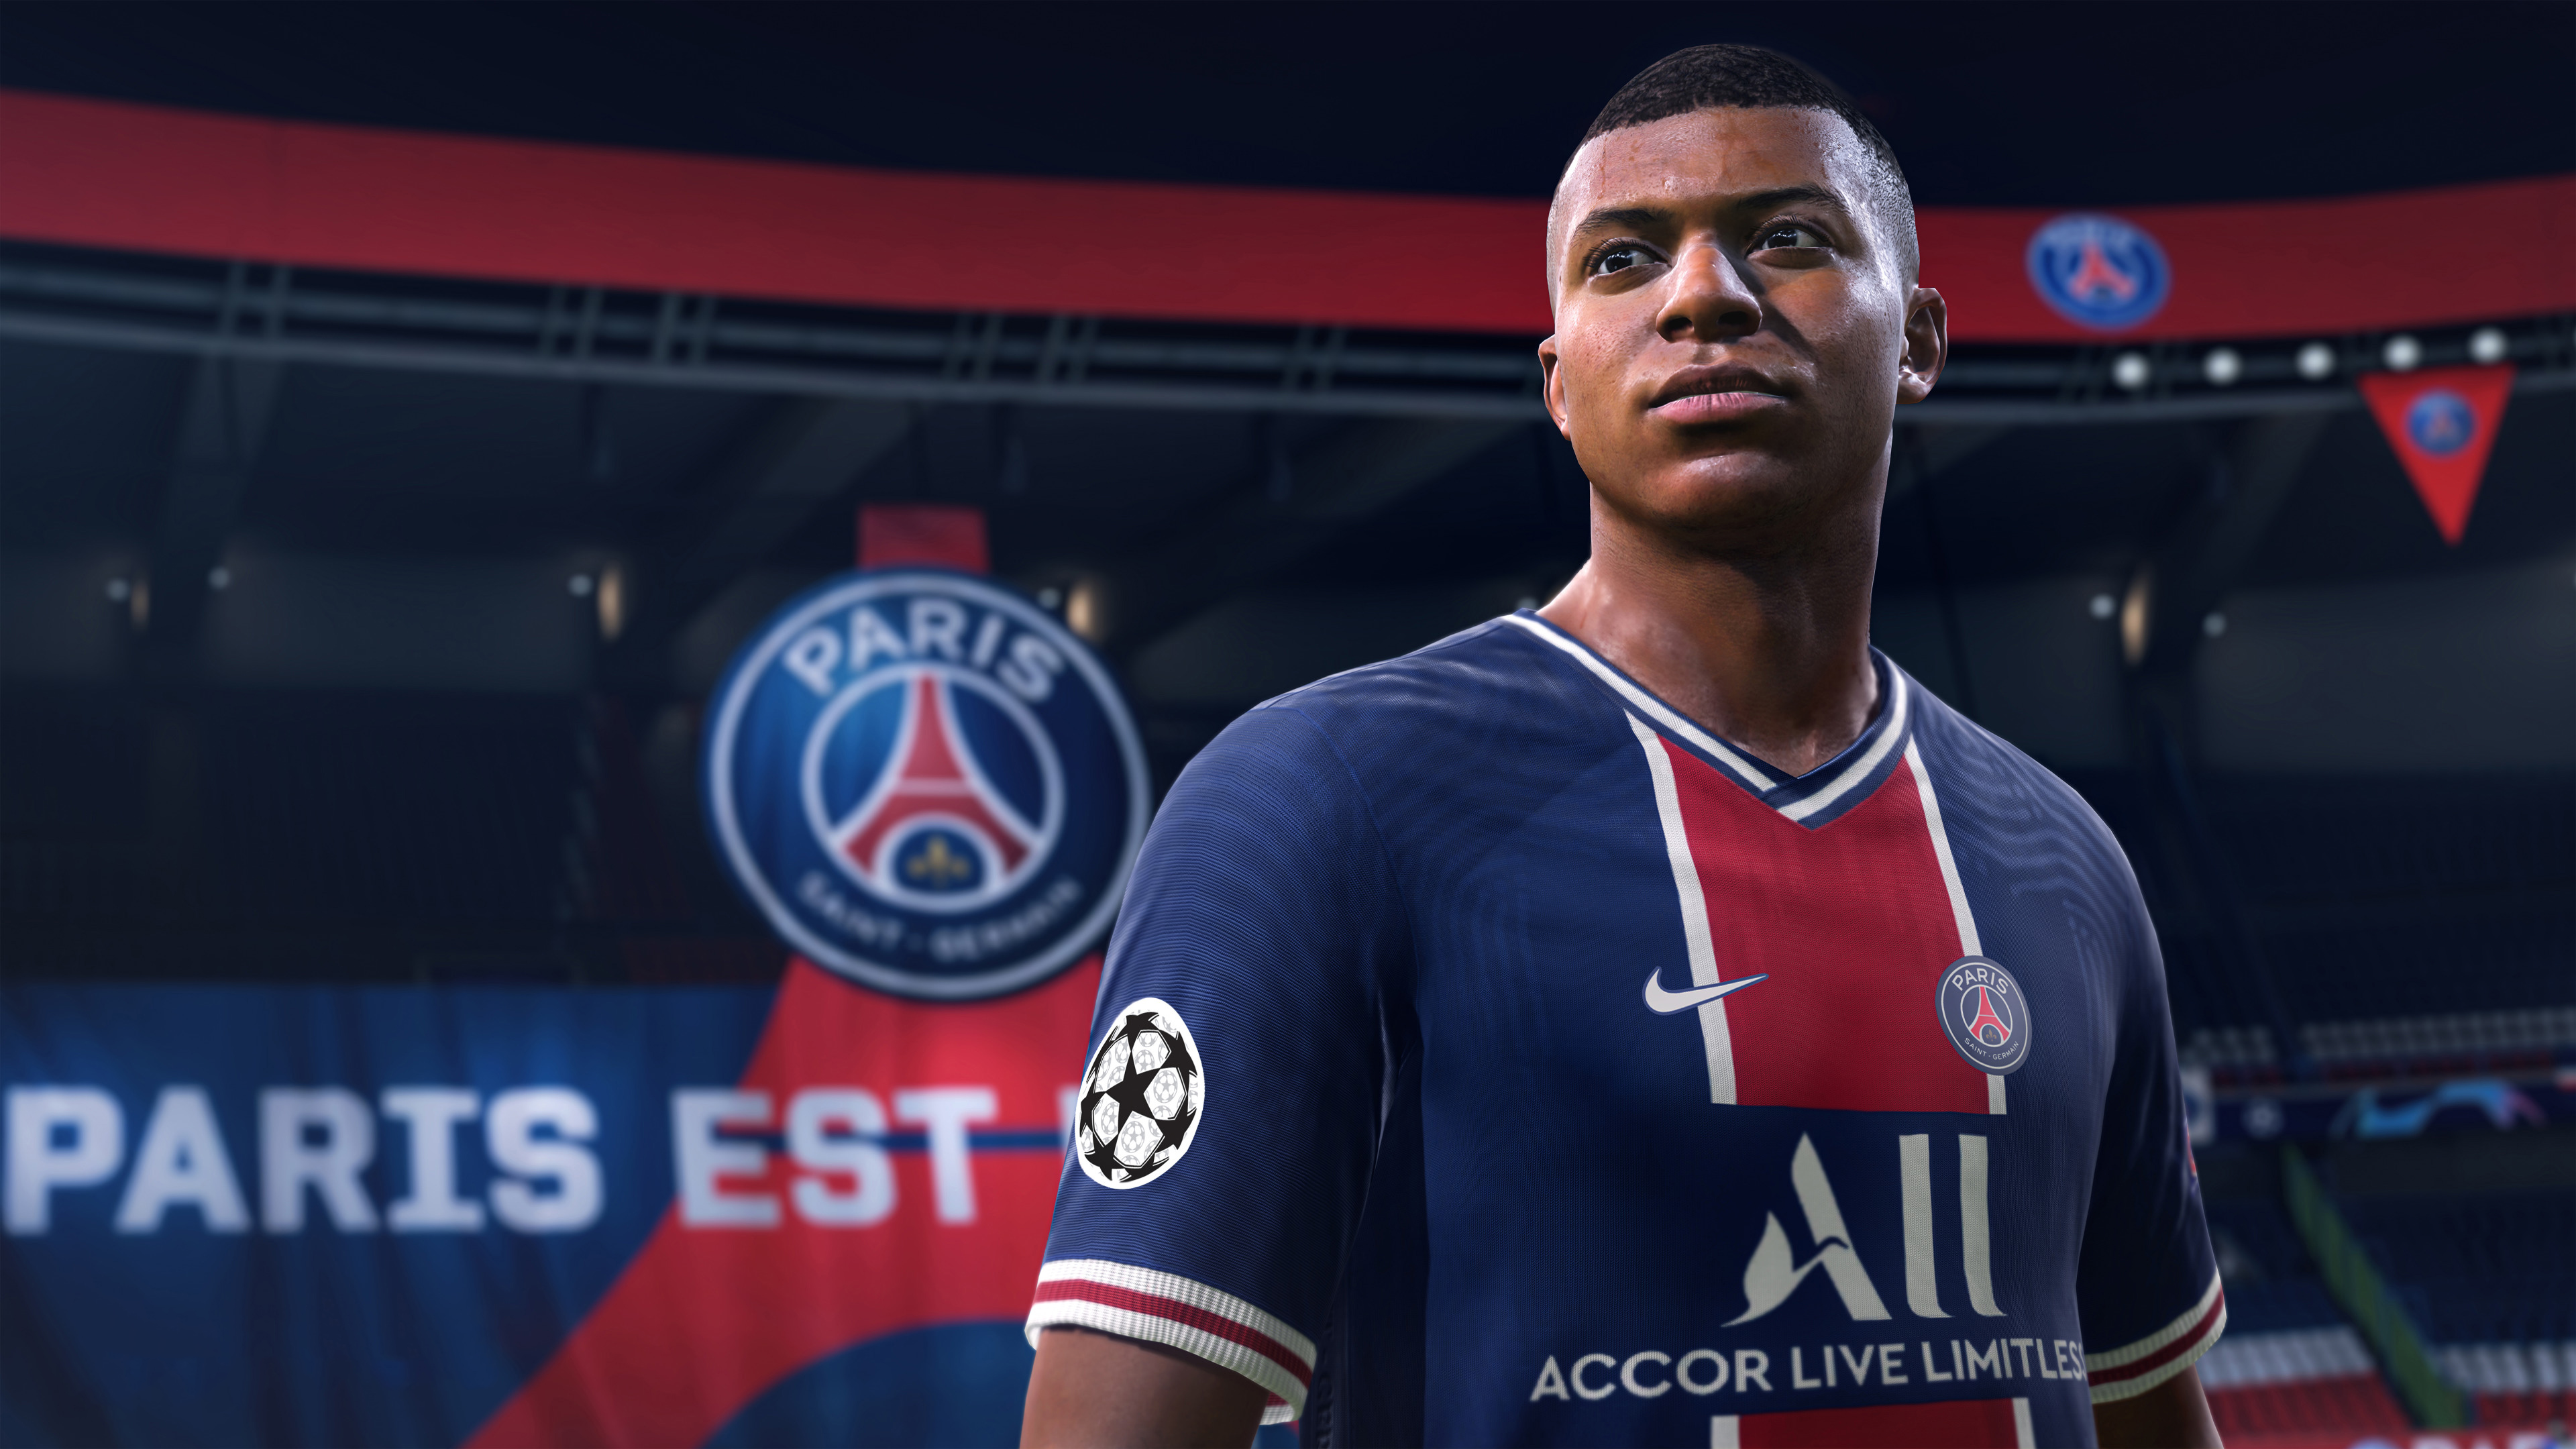 Kylian Mbappe Fifa 21 4k, HD Games, 4k Wallpapers, Images ...